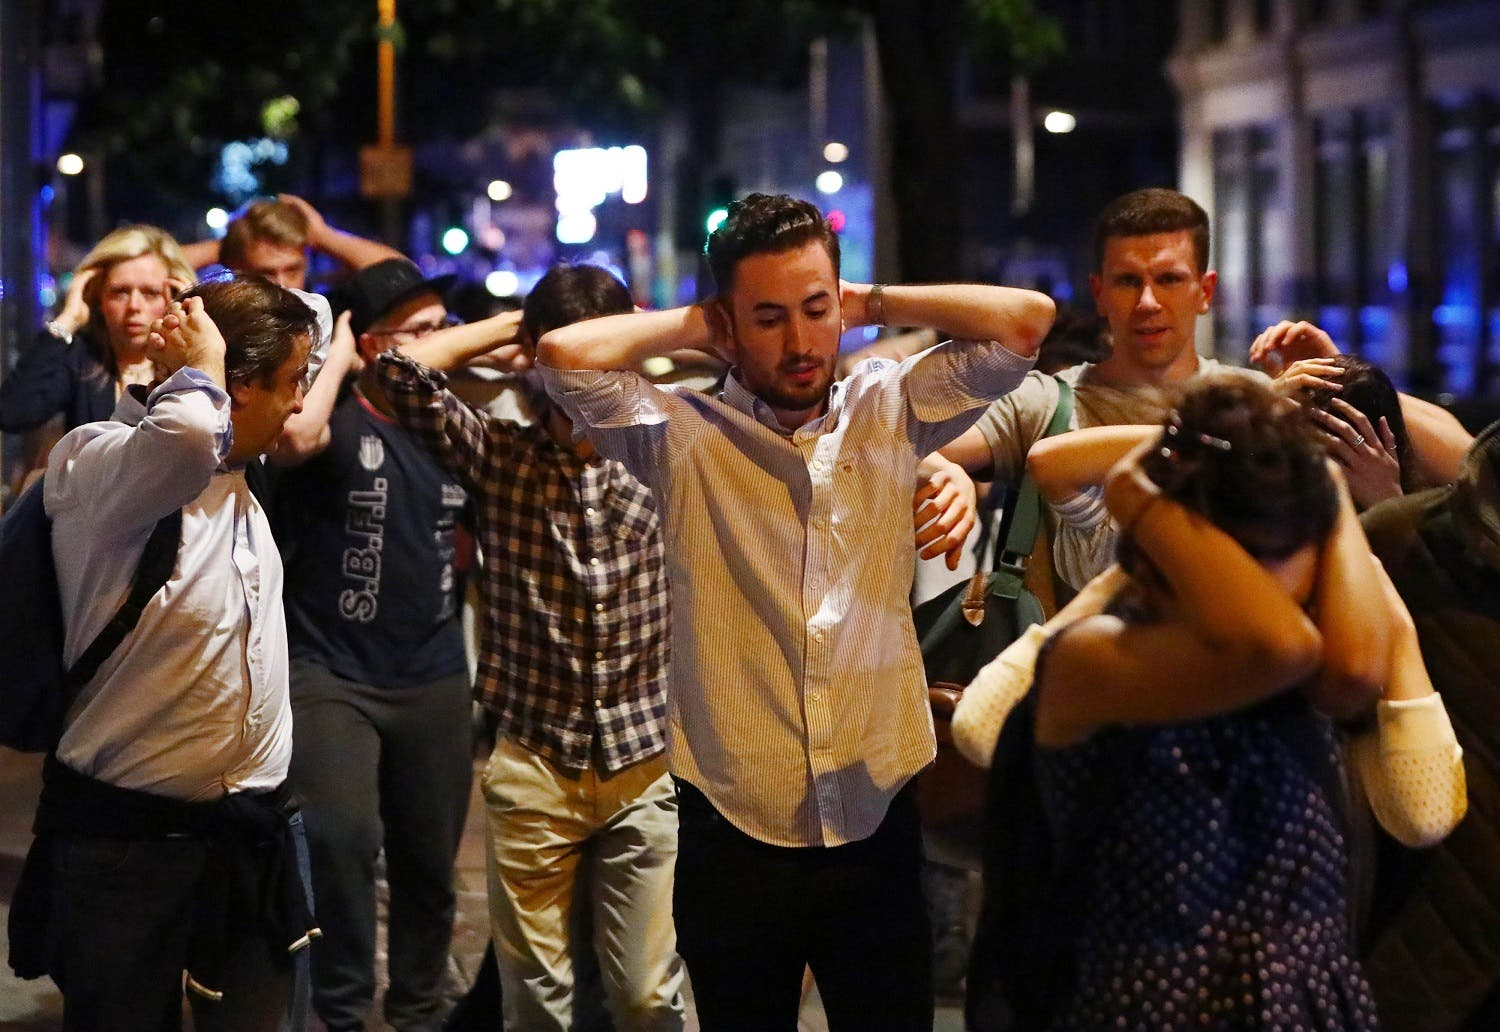 People leave the area with their hands up after an incident near London Bridge in London, Britain June 4, 2017. reuters